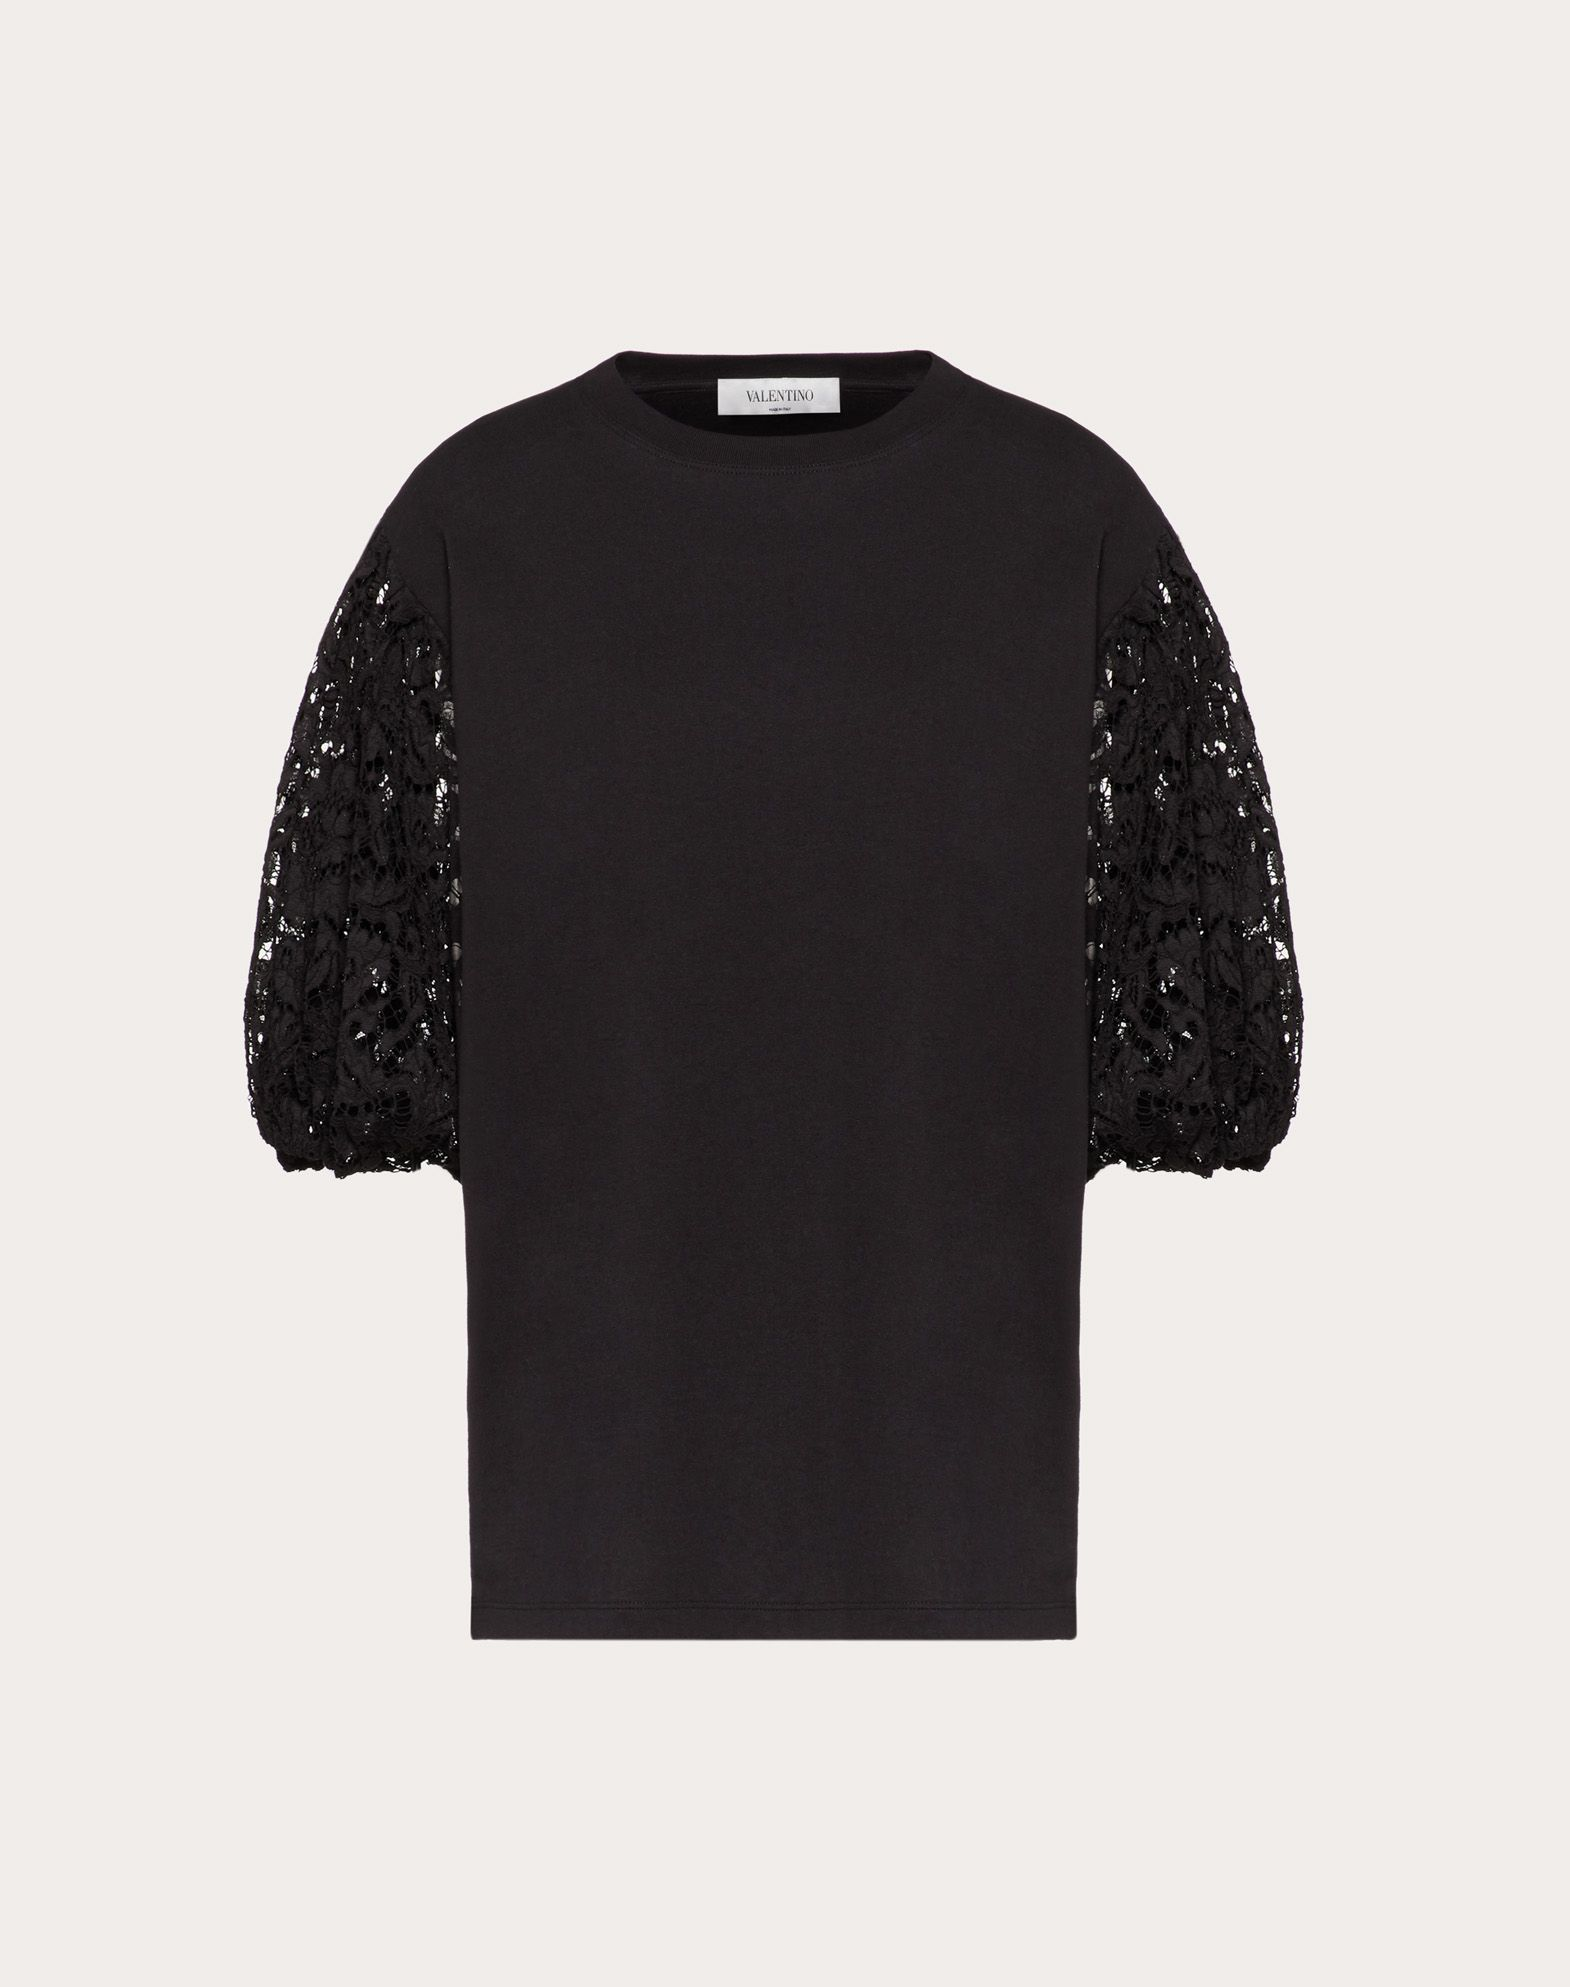 Jersey and Heavy Lace T-Shirt